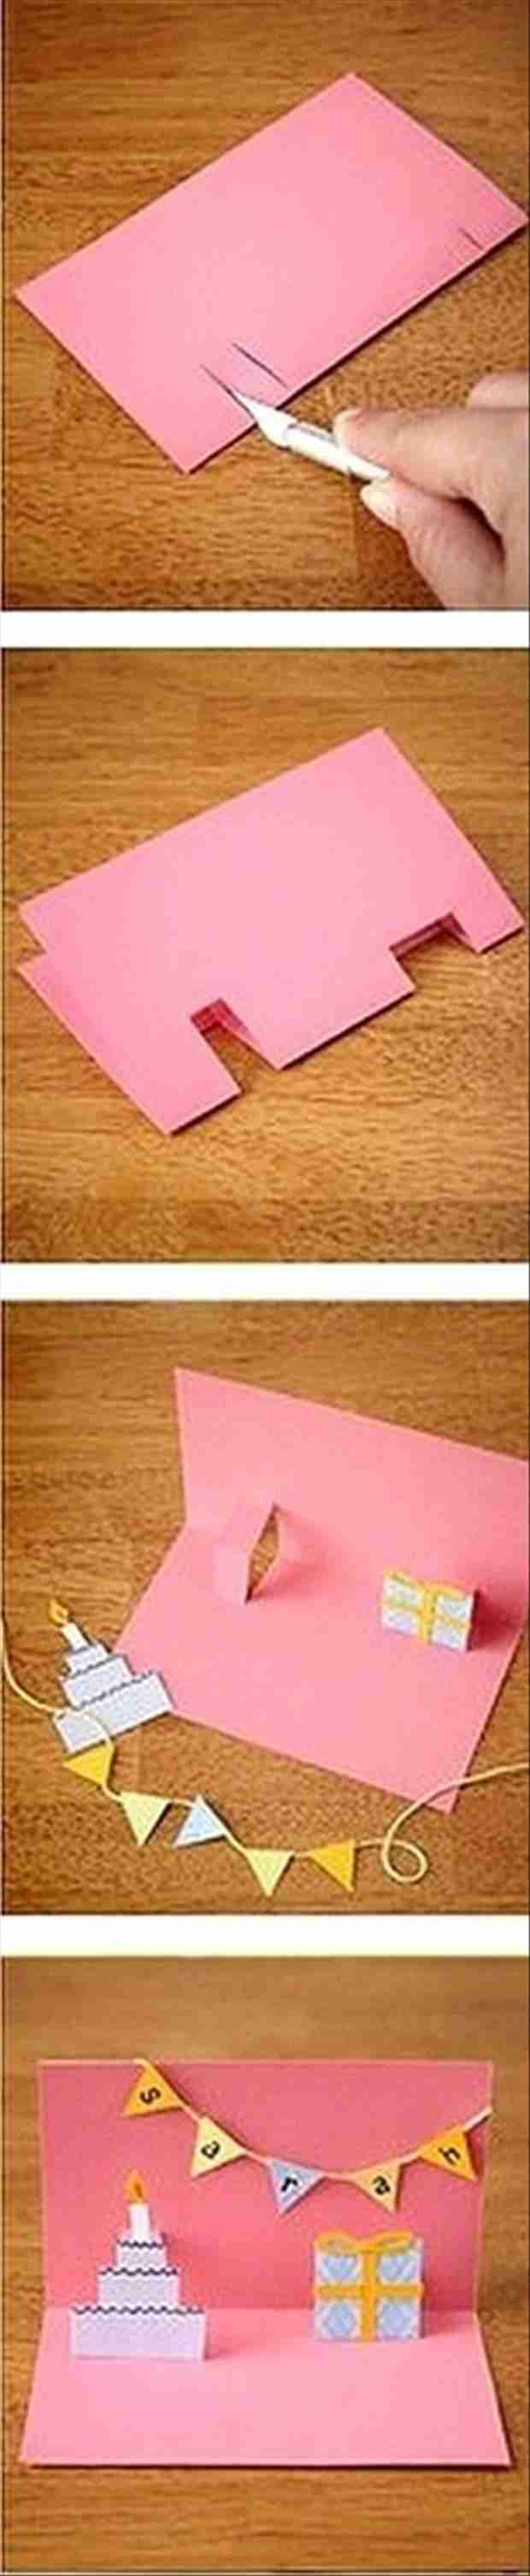 make-your-own-birthday-cards